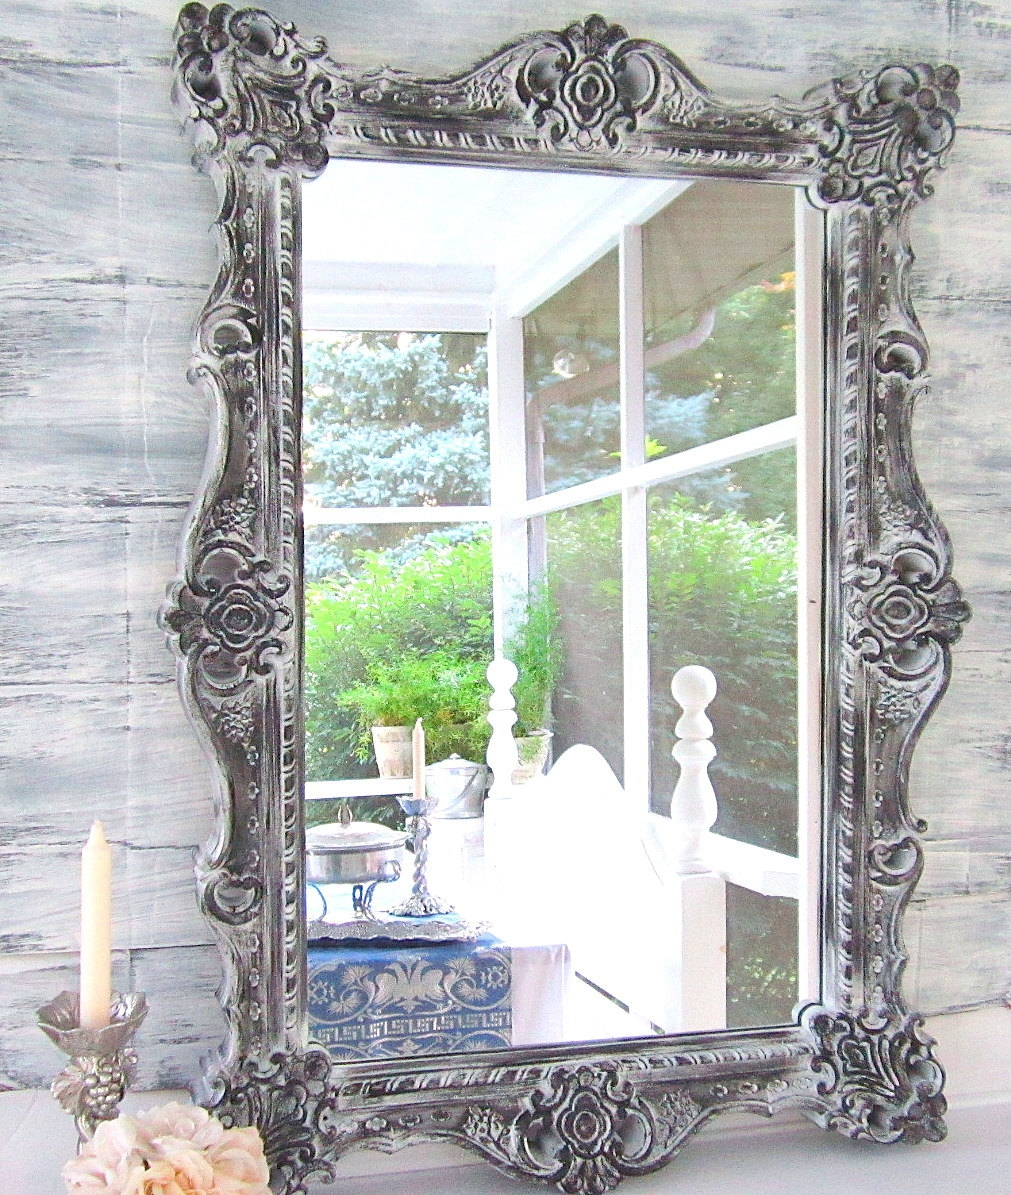 Decorative Vintage Mirrors For Sale Gray Blue Mirror 28×22 With Vintage Mirrors For Sale (View 15 of 15)